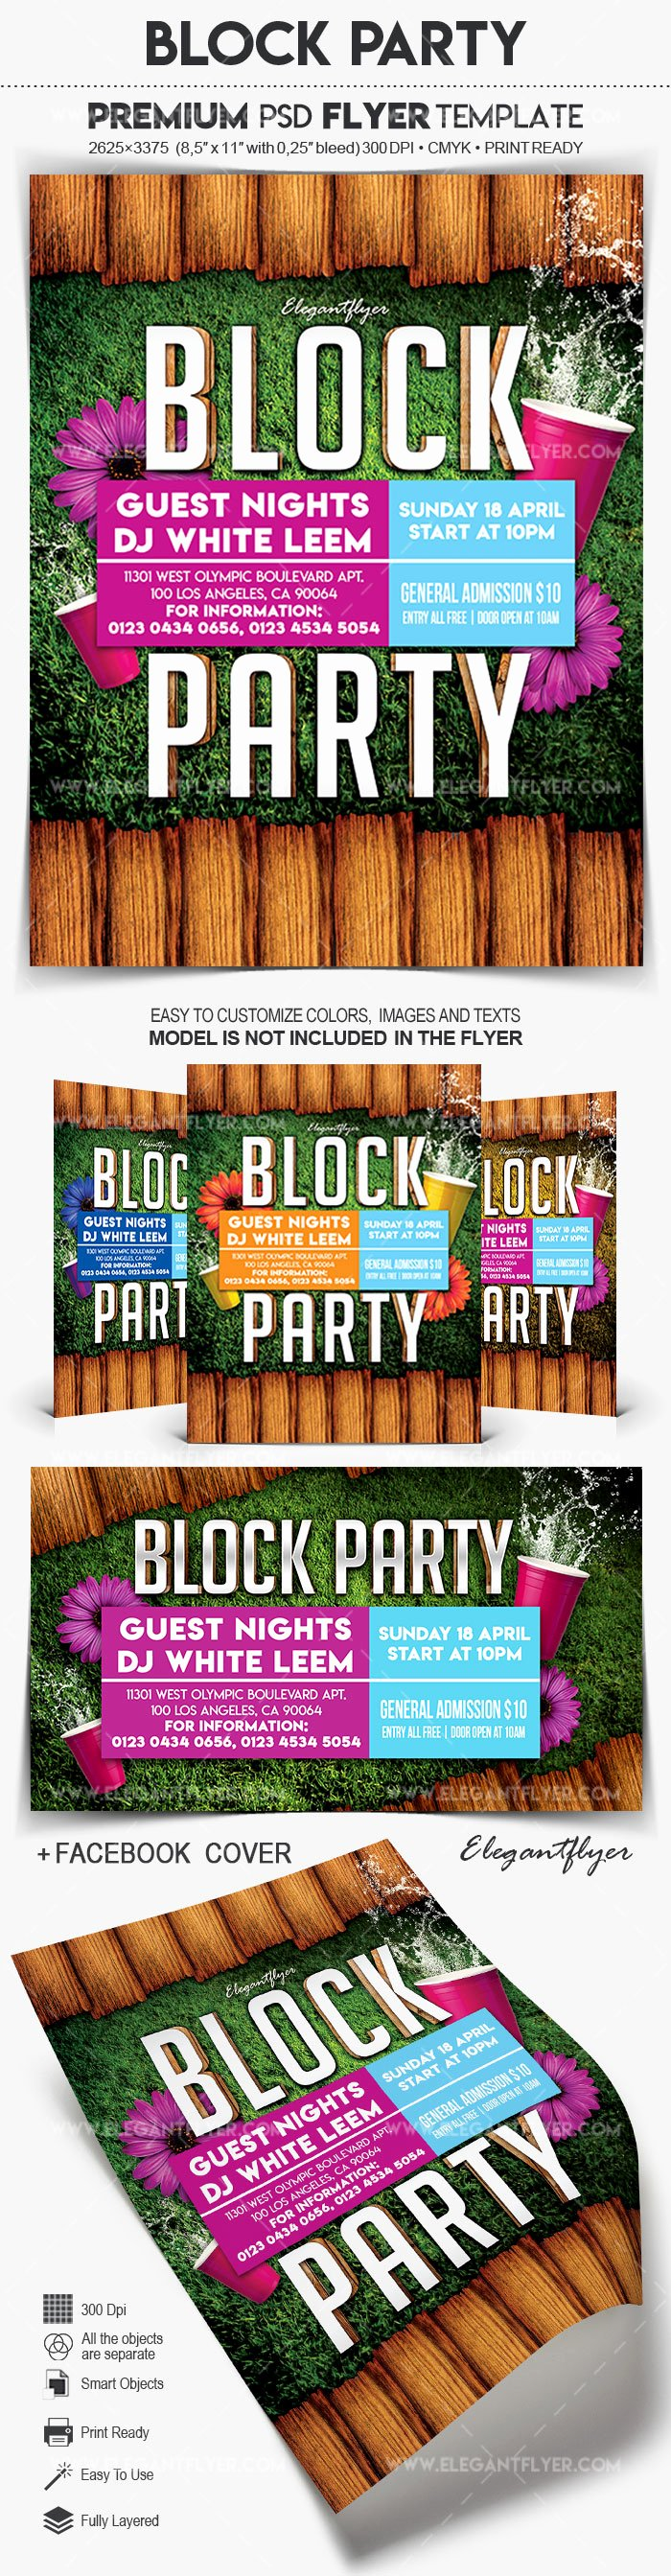 Block Party Flyer Templates New Block Party – Flyer Psd Template – by Elegantflyer